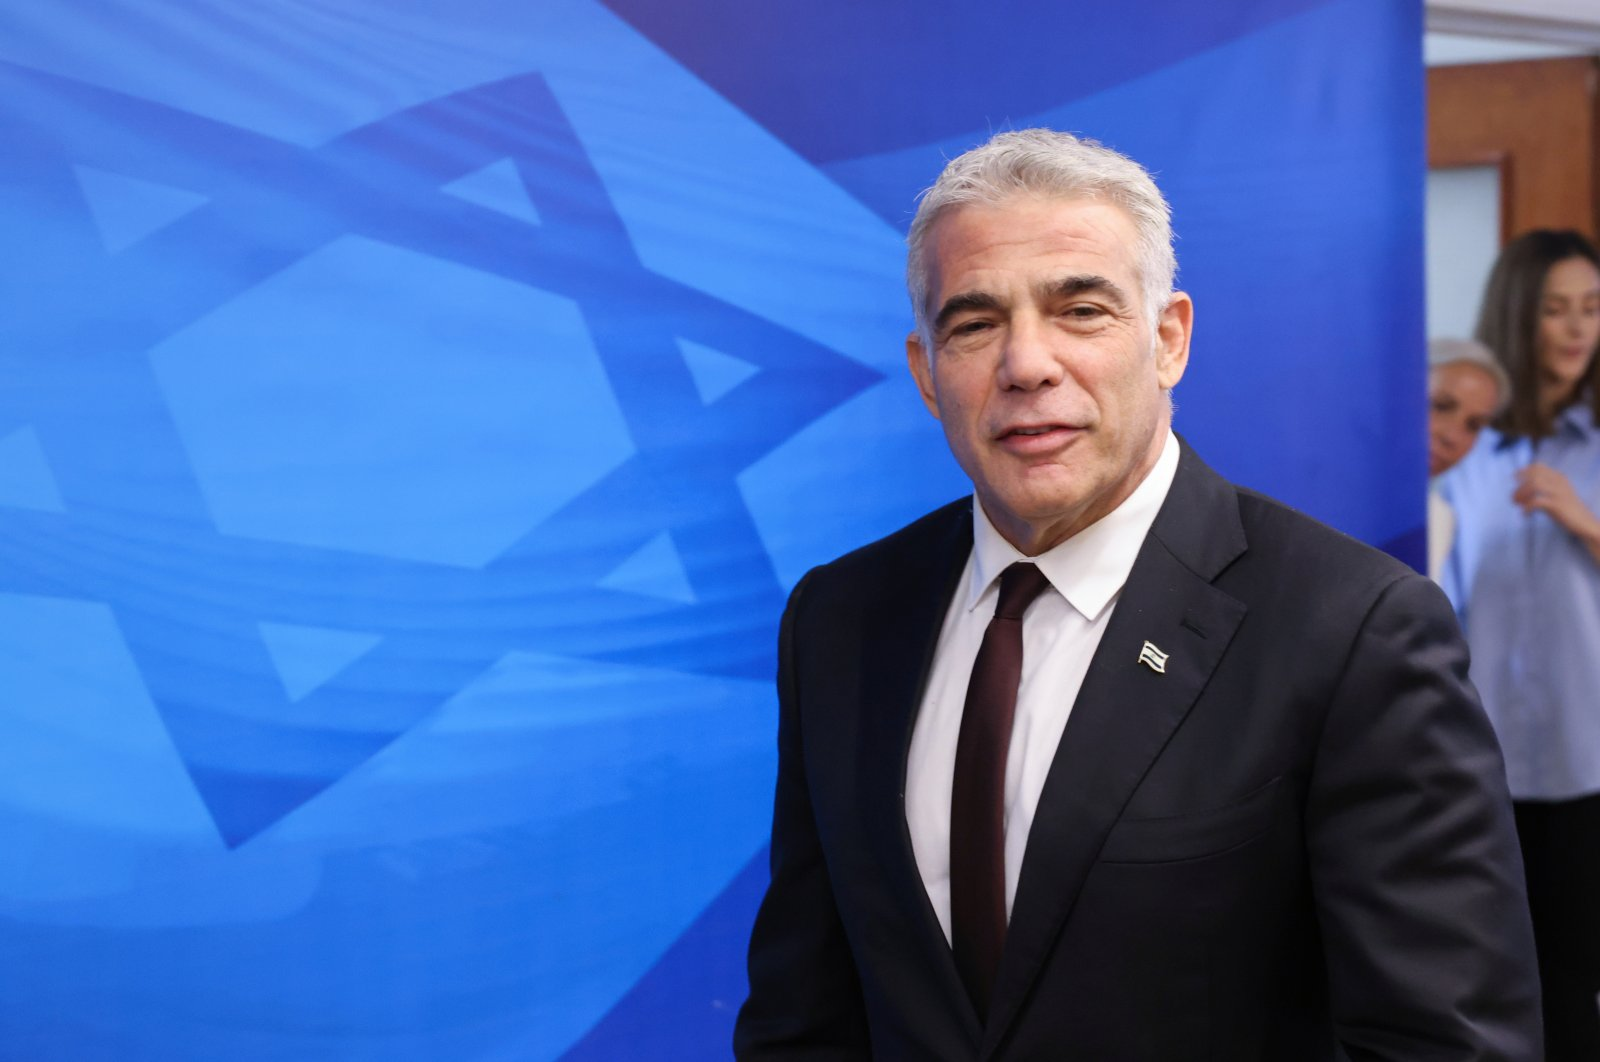 Israeli alternate Prime Minister and Foreign Minister Yair Lapid arrives to attend the first weekly cabinet meeting of the new government in Jerusalem, June 20, 2021. (Reuters Photo)